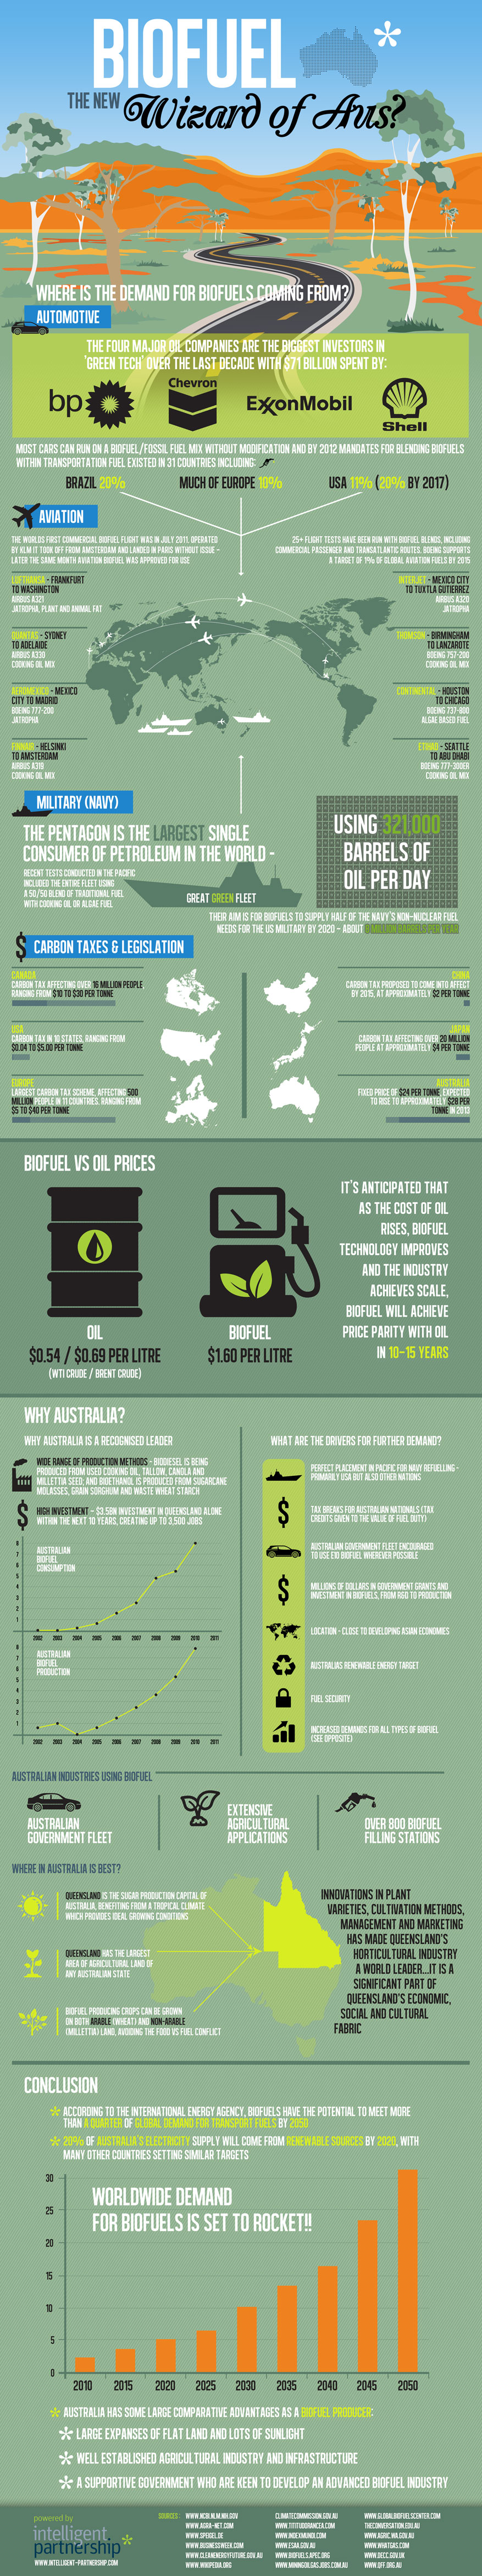 Biofuel - The New Wizard of Aus?